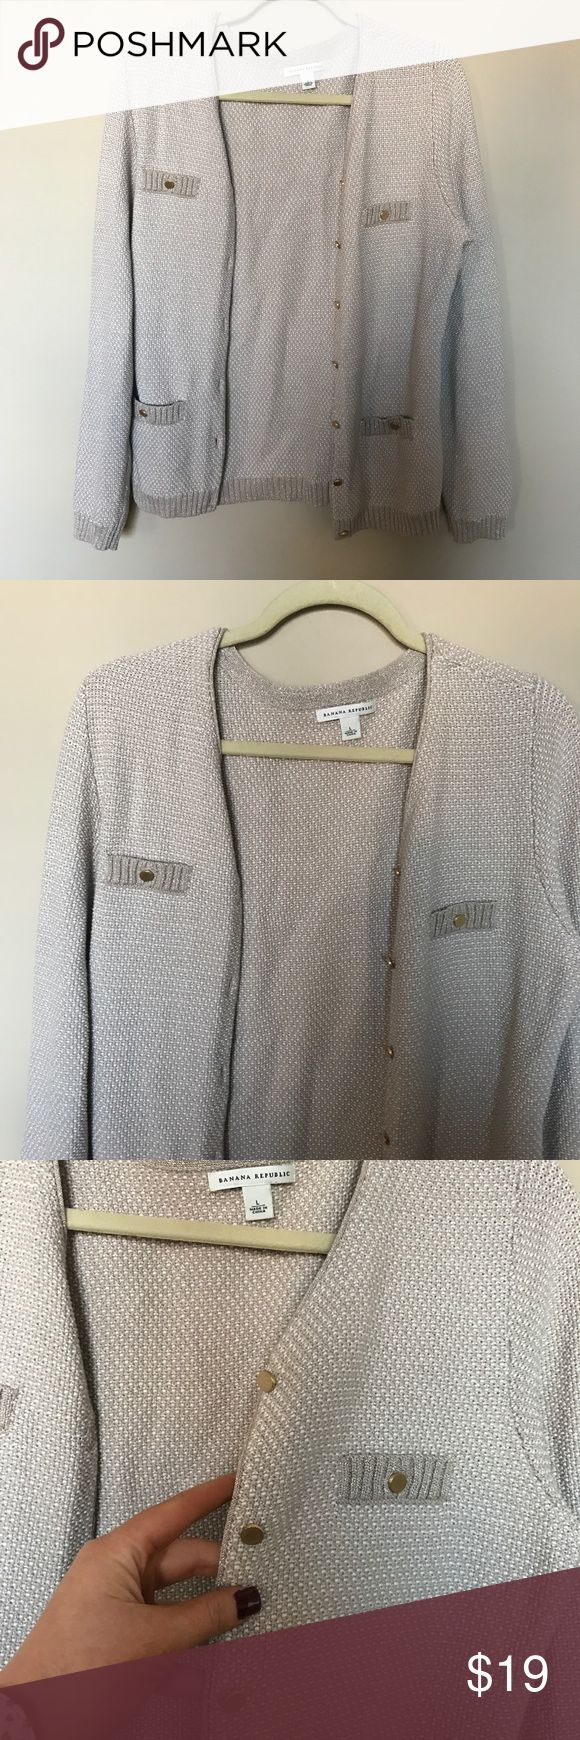 """[Banana Republic] Metallic Cardigan Size Large 27"""" long 21"""" armpit to armpit  26"""" sleeves   Small stain on inner sleeve (shown in photo) Banana Republic Sweaters Cardigans"""